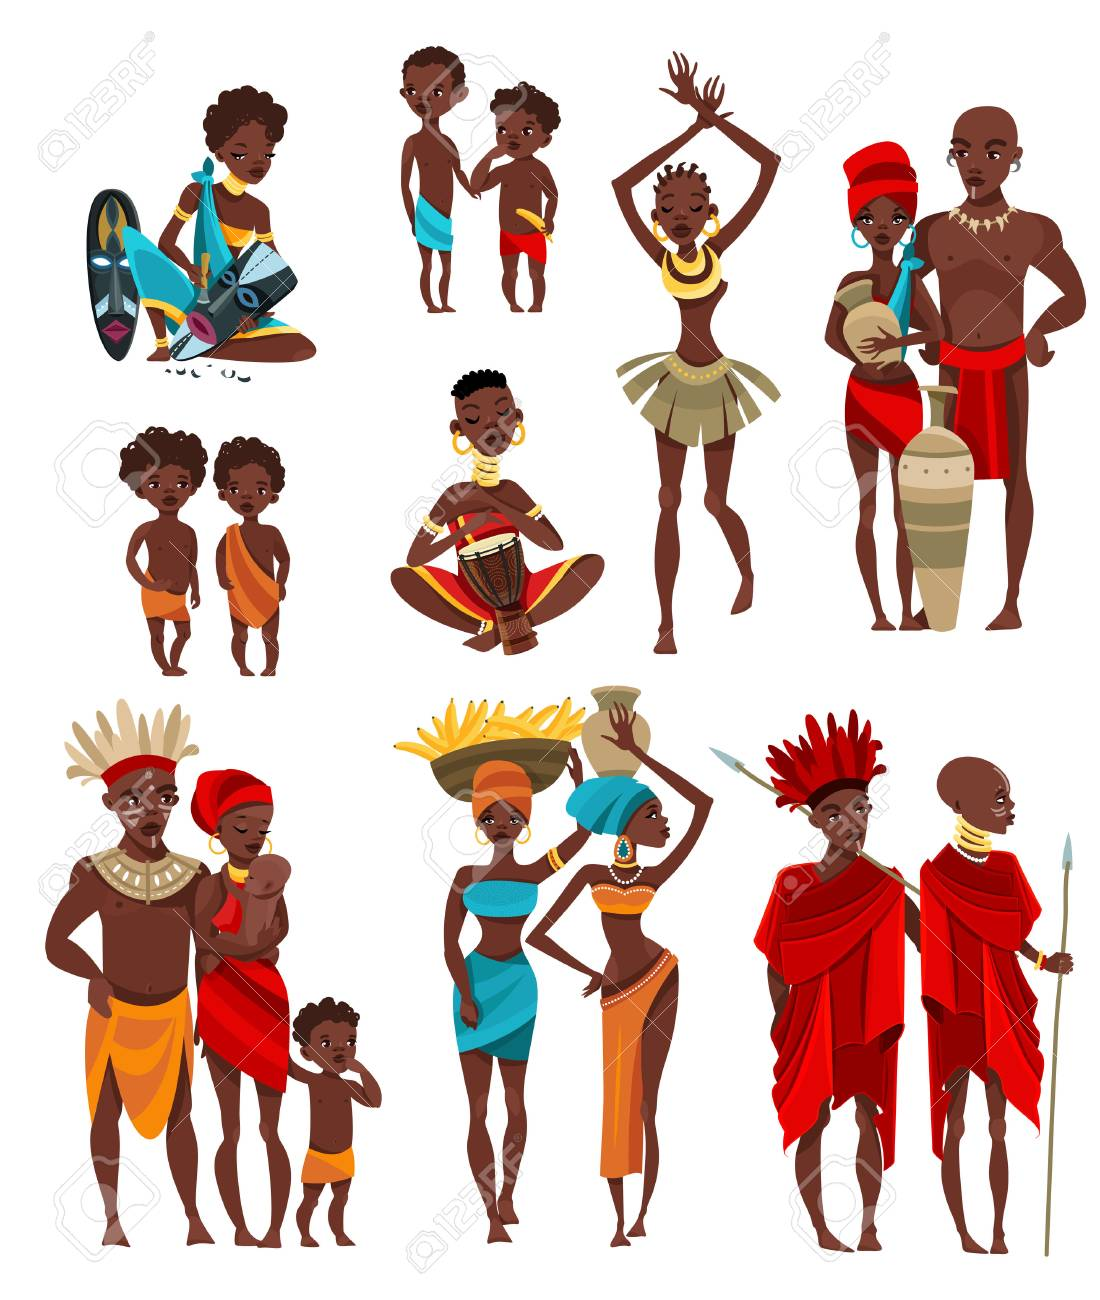 Tribal people clipart clip black and white library Tribal People Cliparts - Making-The-Web.com clip black and white library